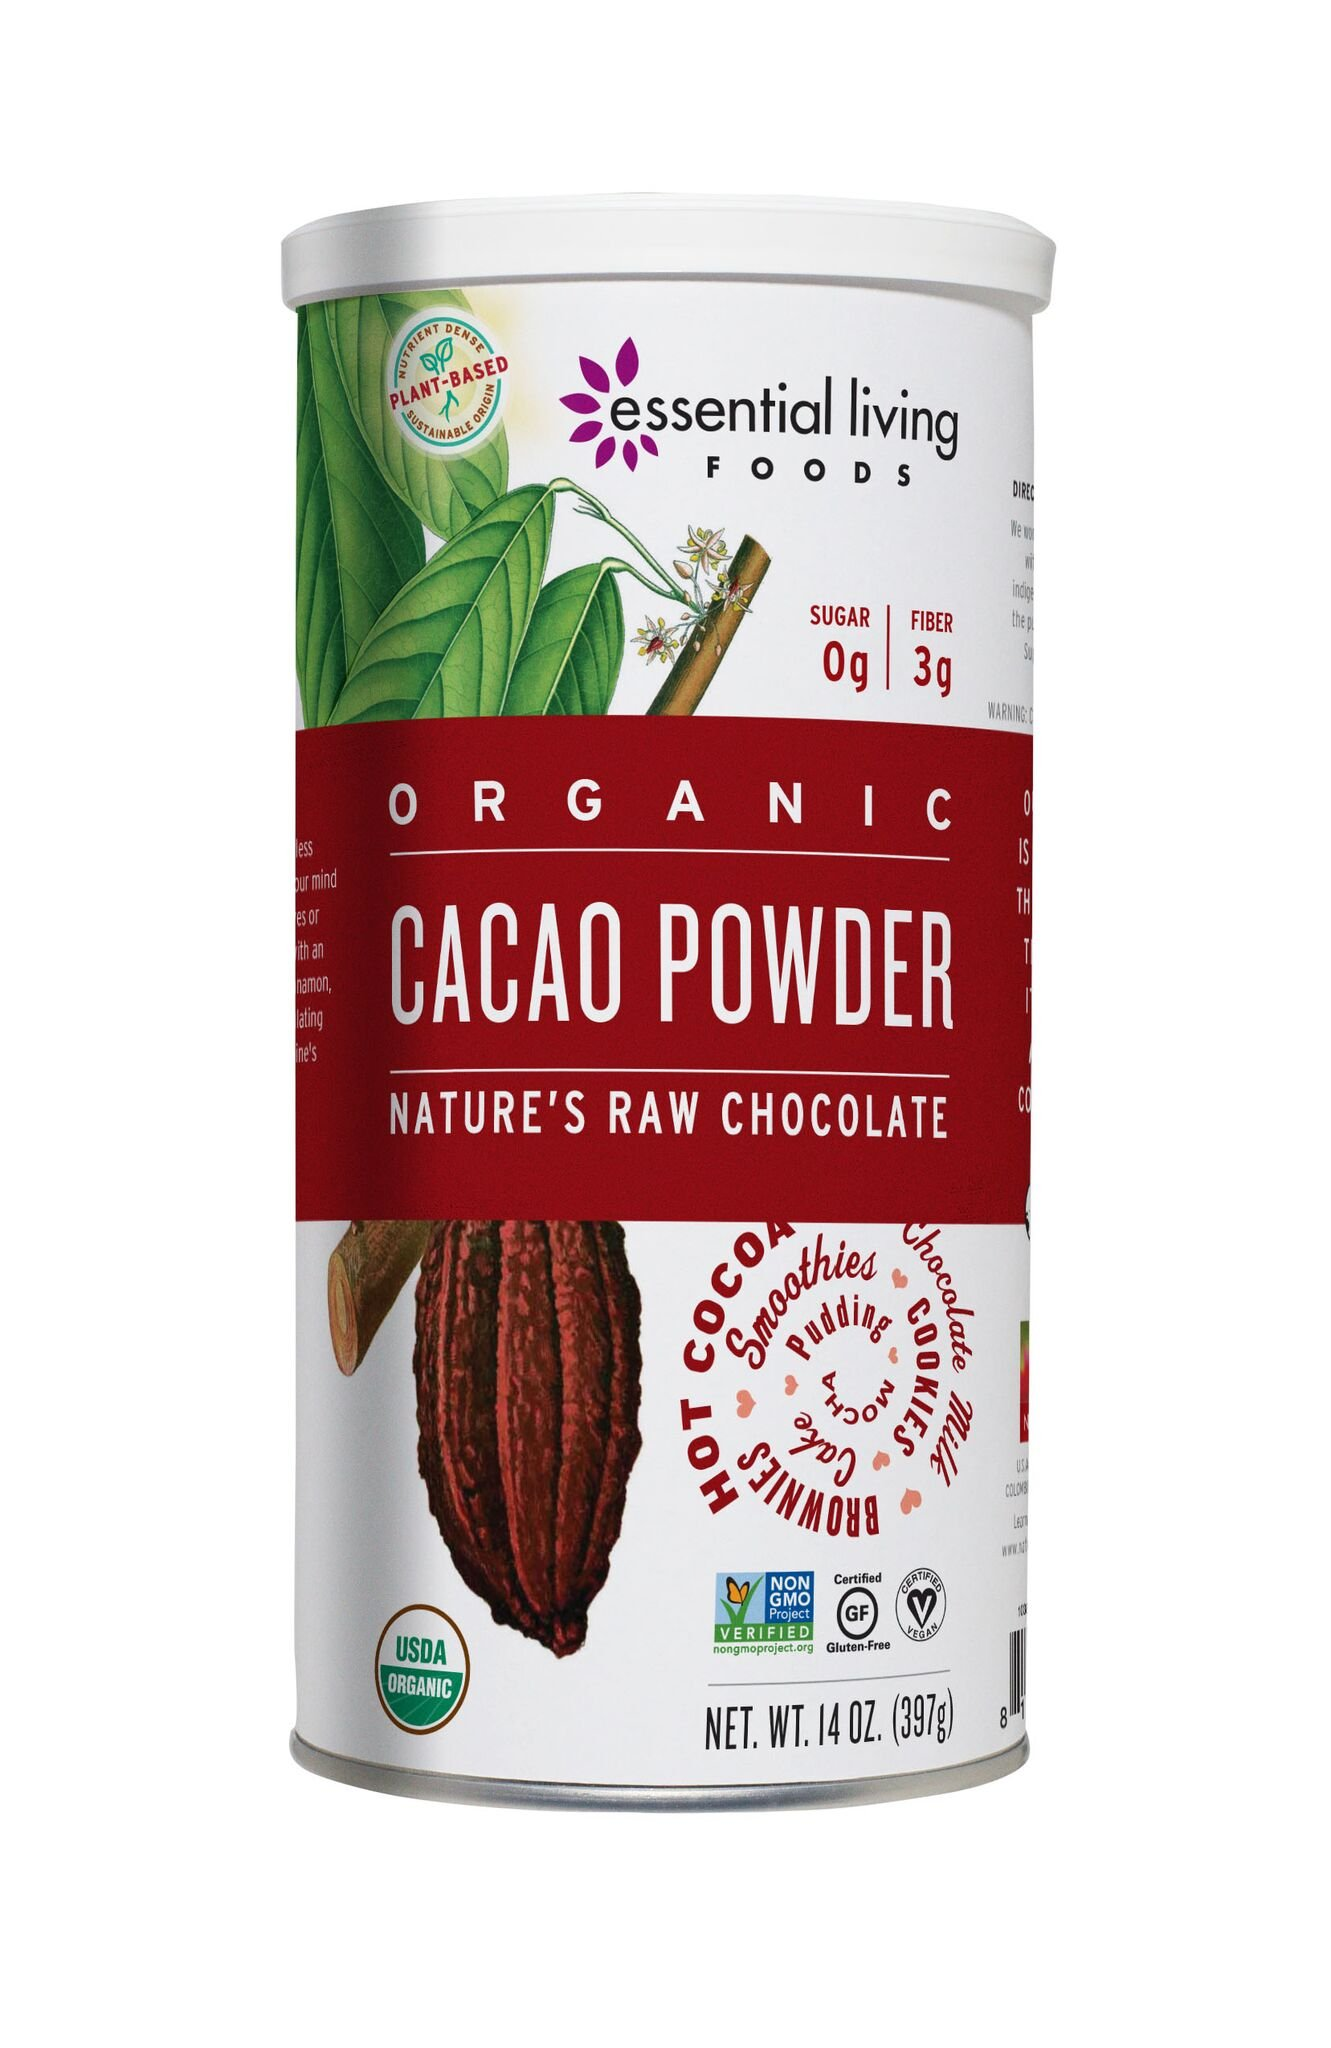 Essential Living Foods Organic Cacao Powder, Healthy Unsweetened Chocolate Powder for Smoothies, Desserts, Baked Goods, Vegan, Superfood Protein Nutrients, Non-GMO, Gluten-Free, Kosher, 14 Ounce Tin